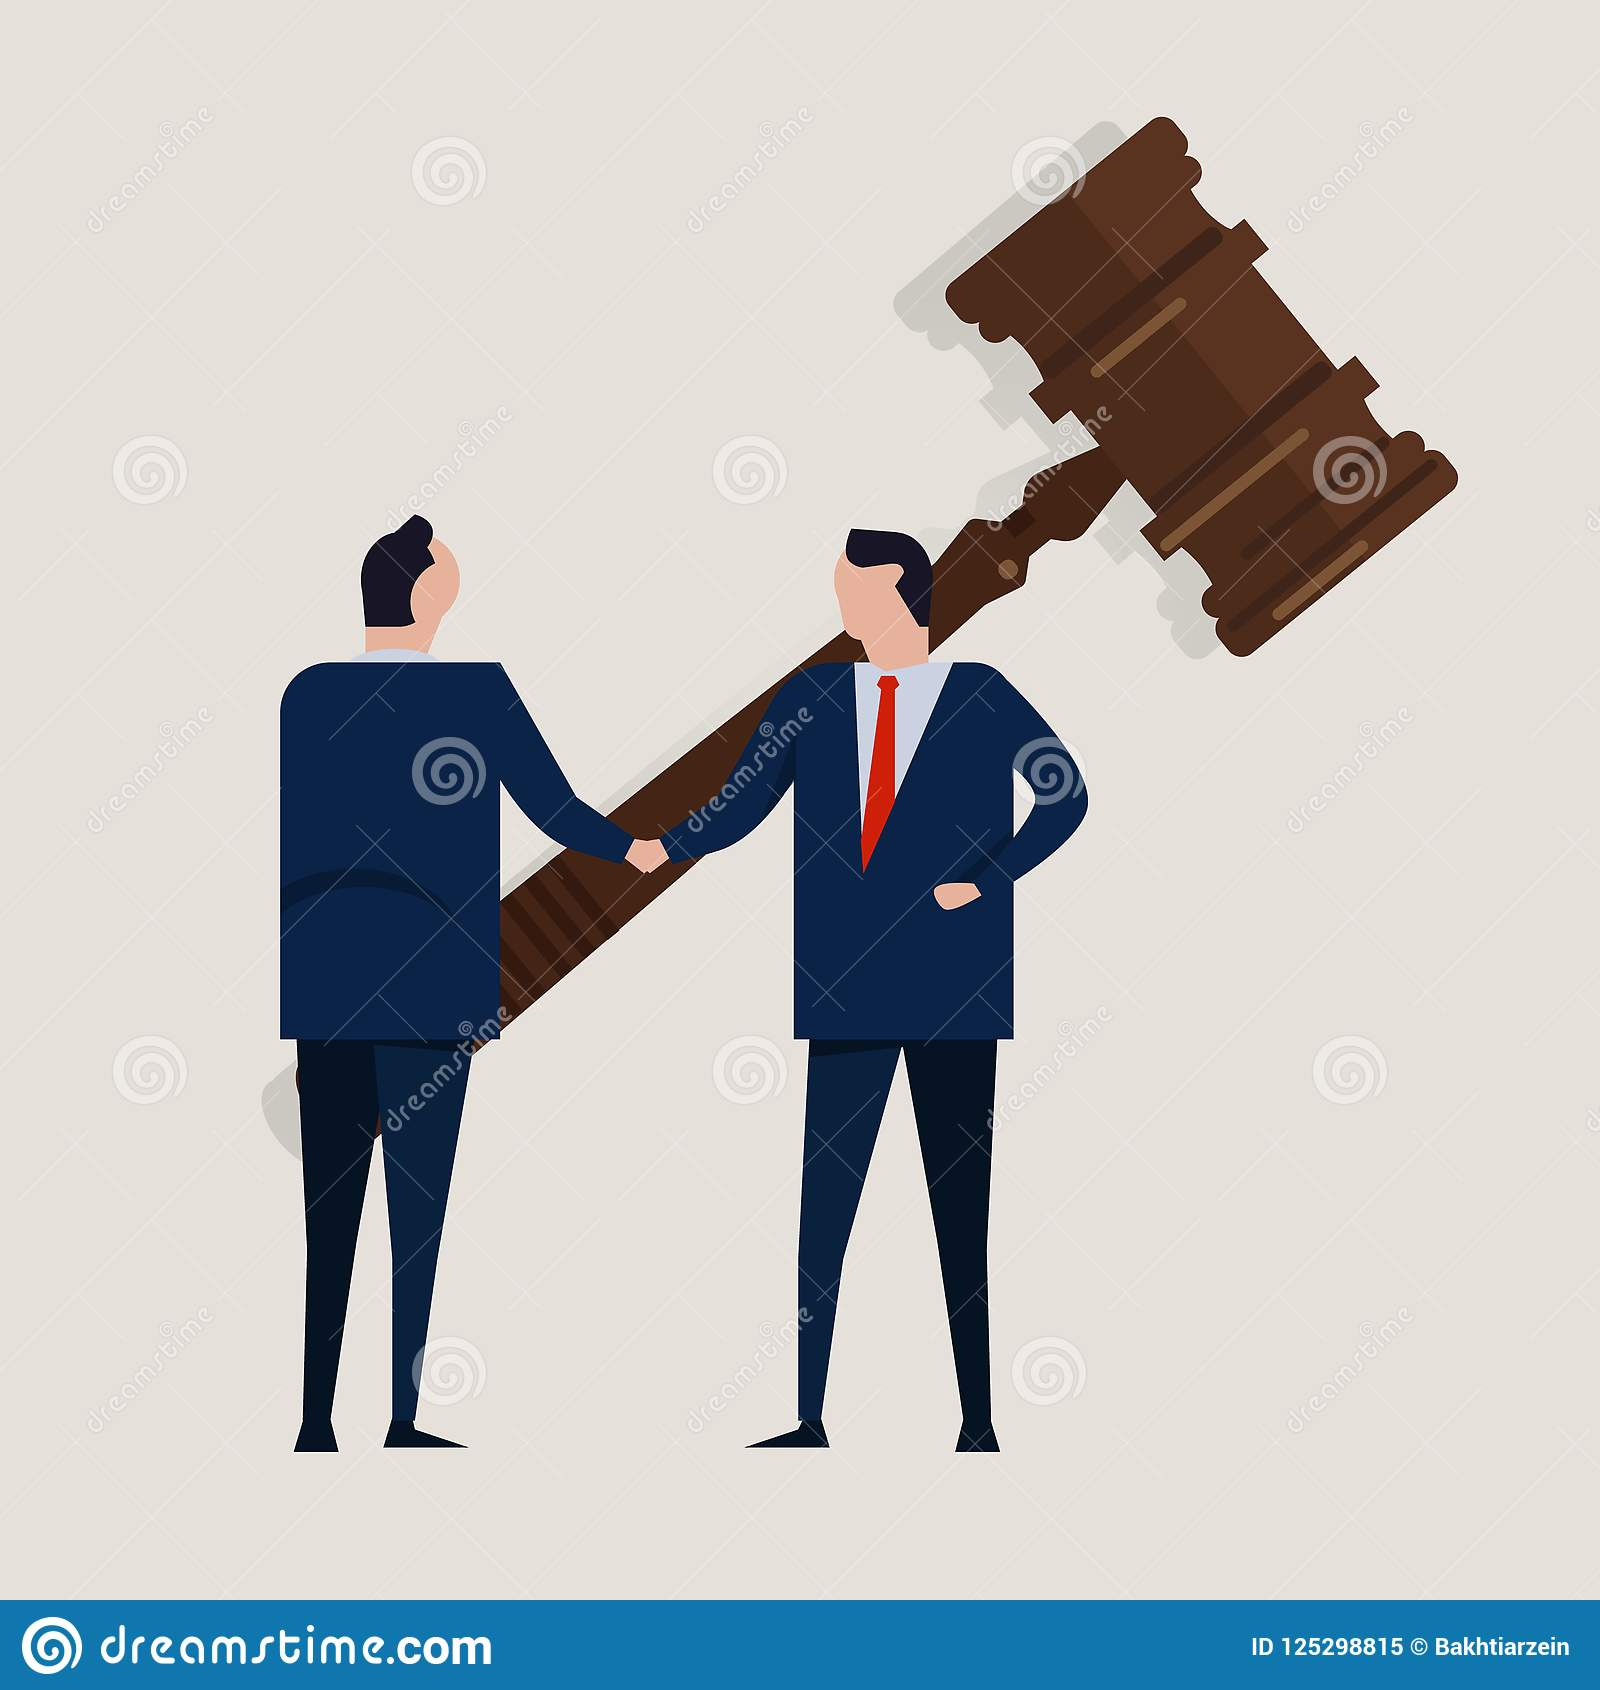 Business Law Legal Contract People Agreement Standing Handshake